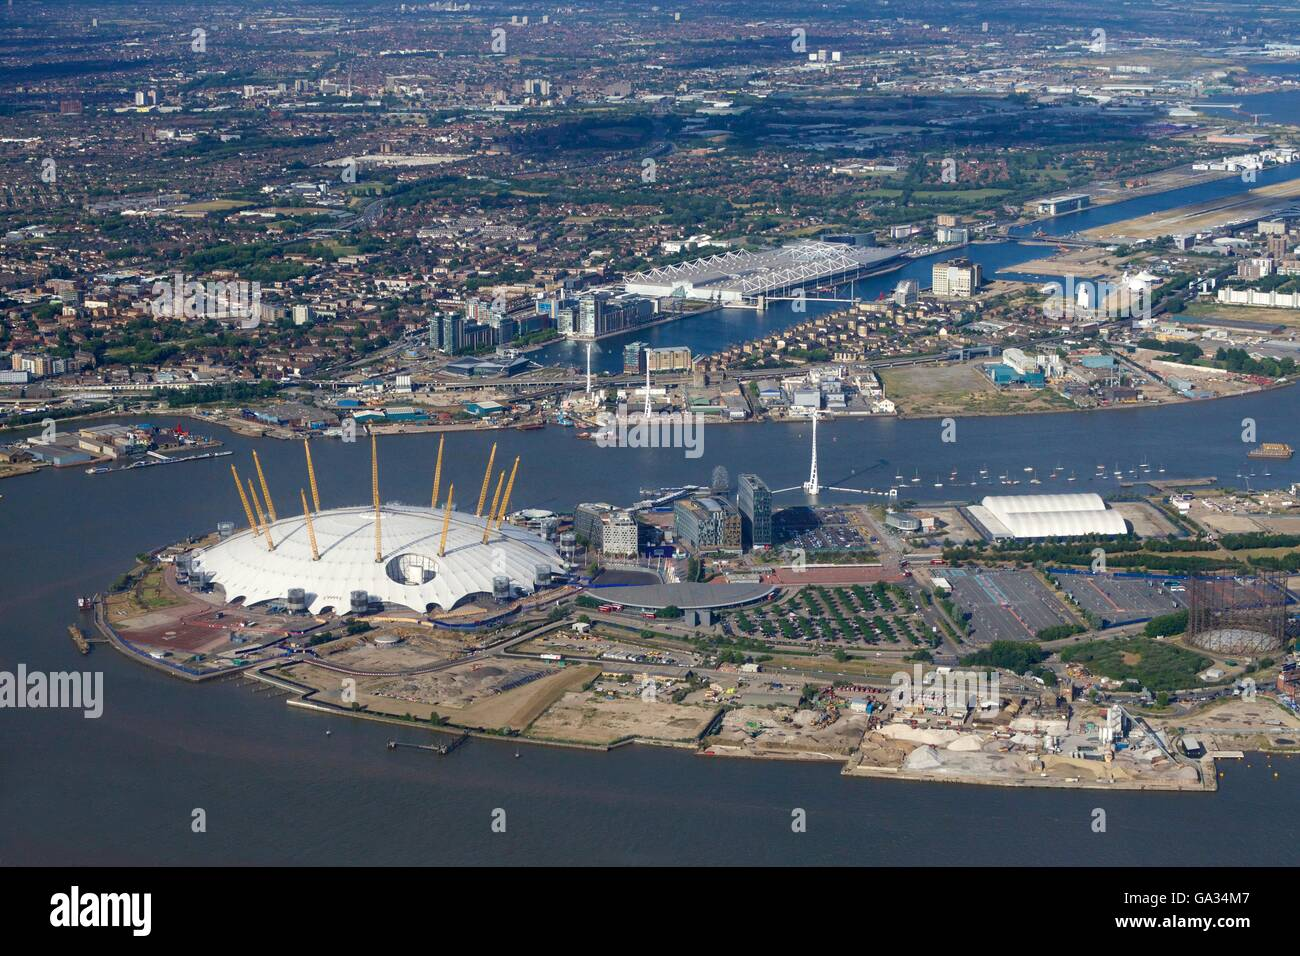 Aerial view of London City Airport and O2 Arena, London, England, UK, GB - Stock Image